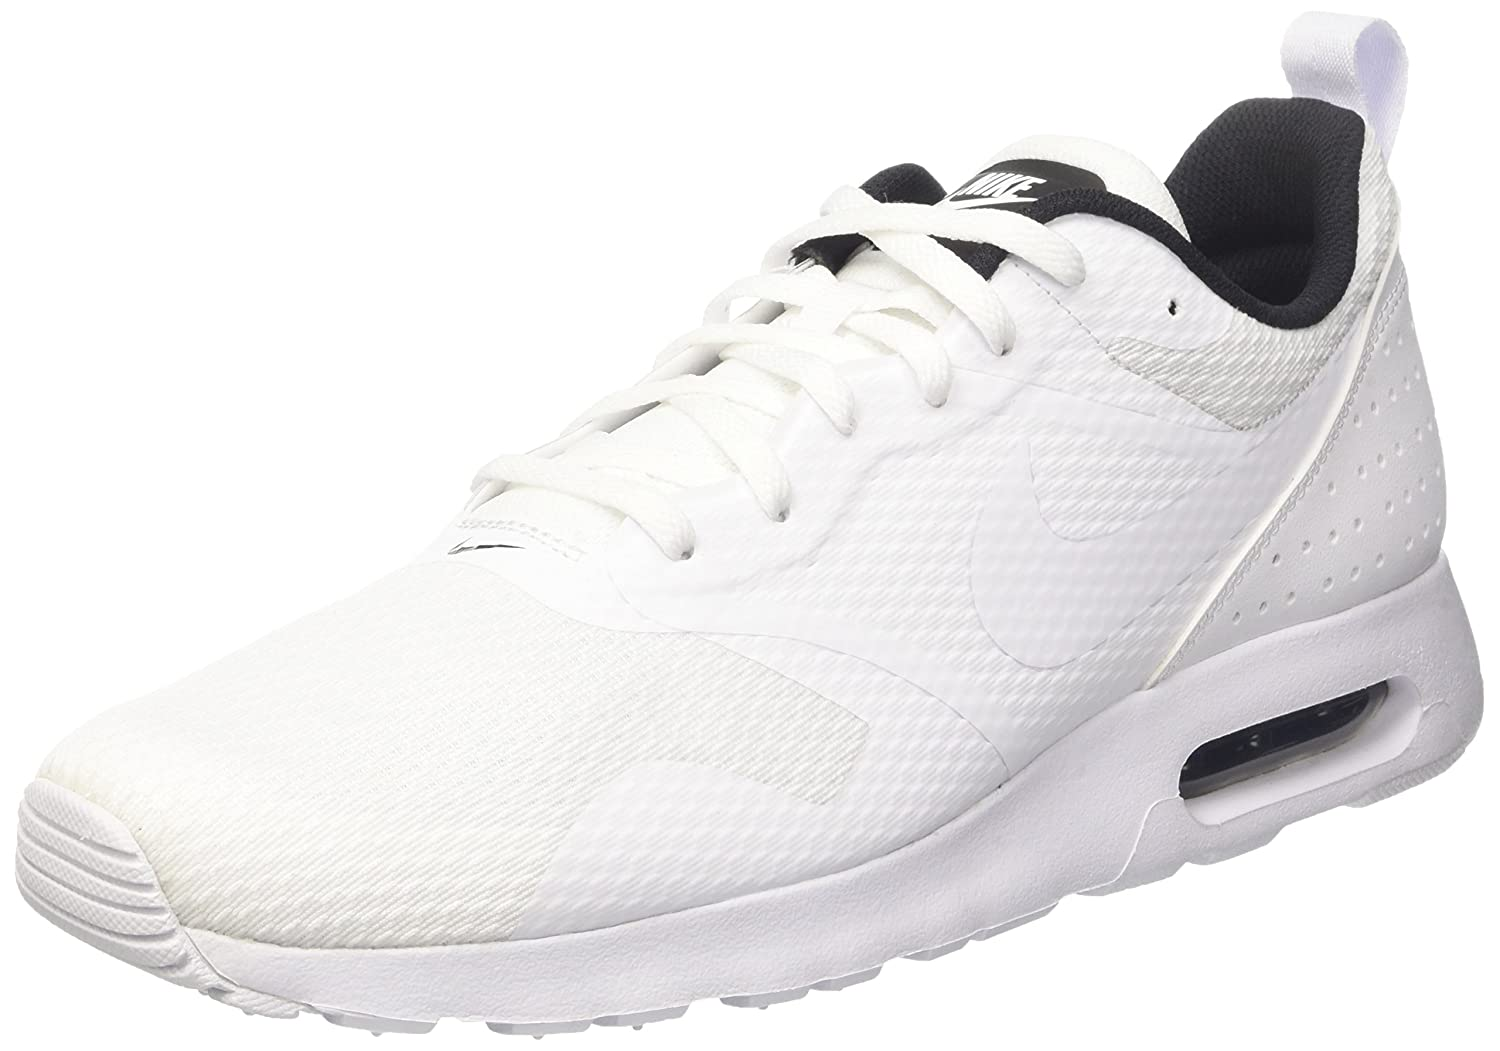 NIKE Men s Air Max Tavas White White Black Running Shoe 8 Men US